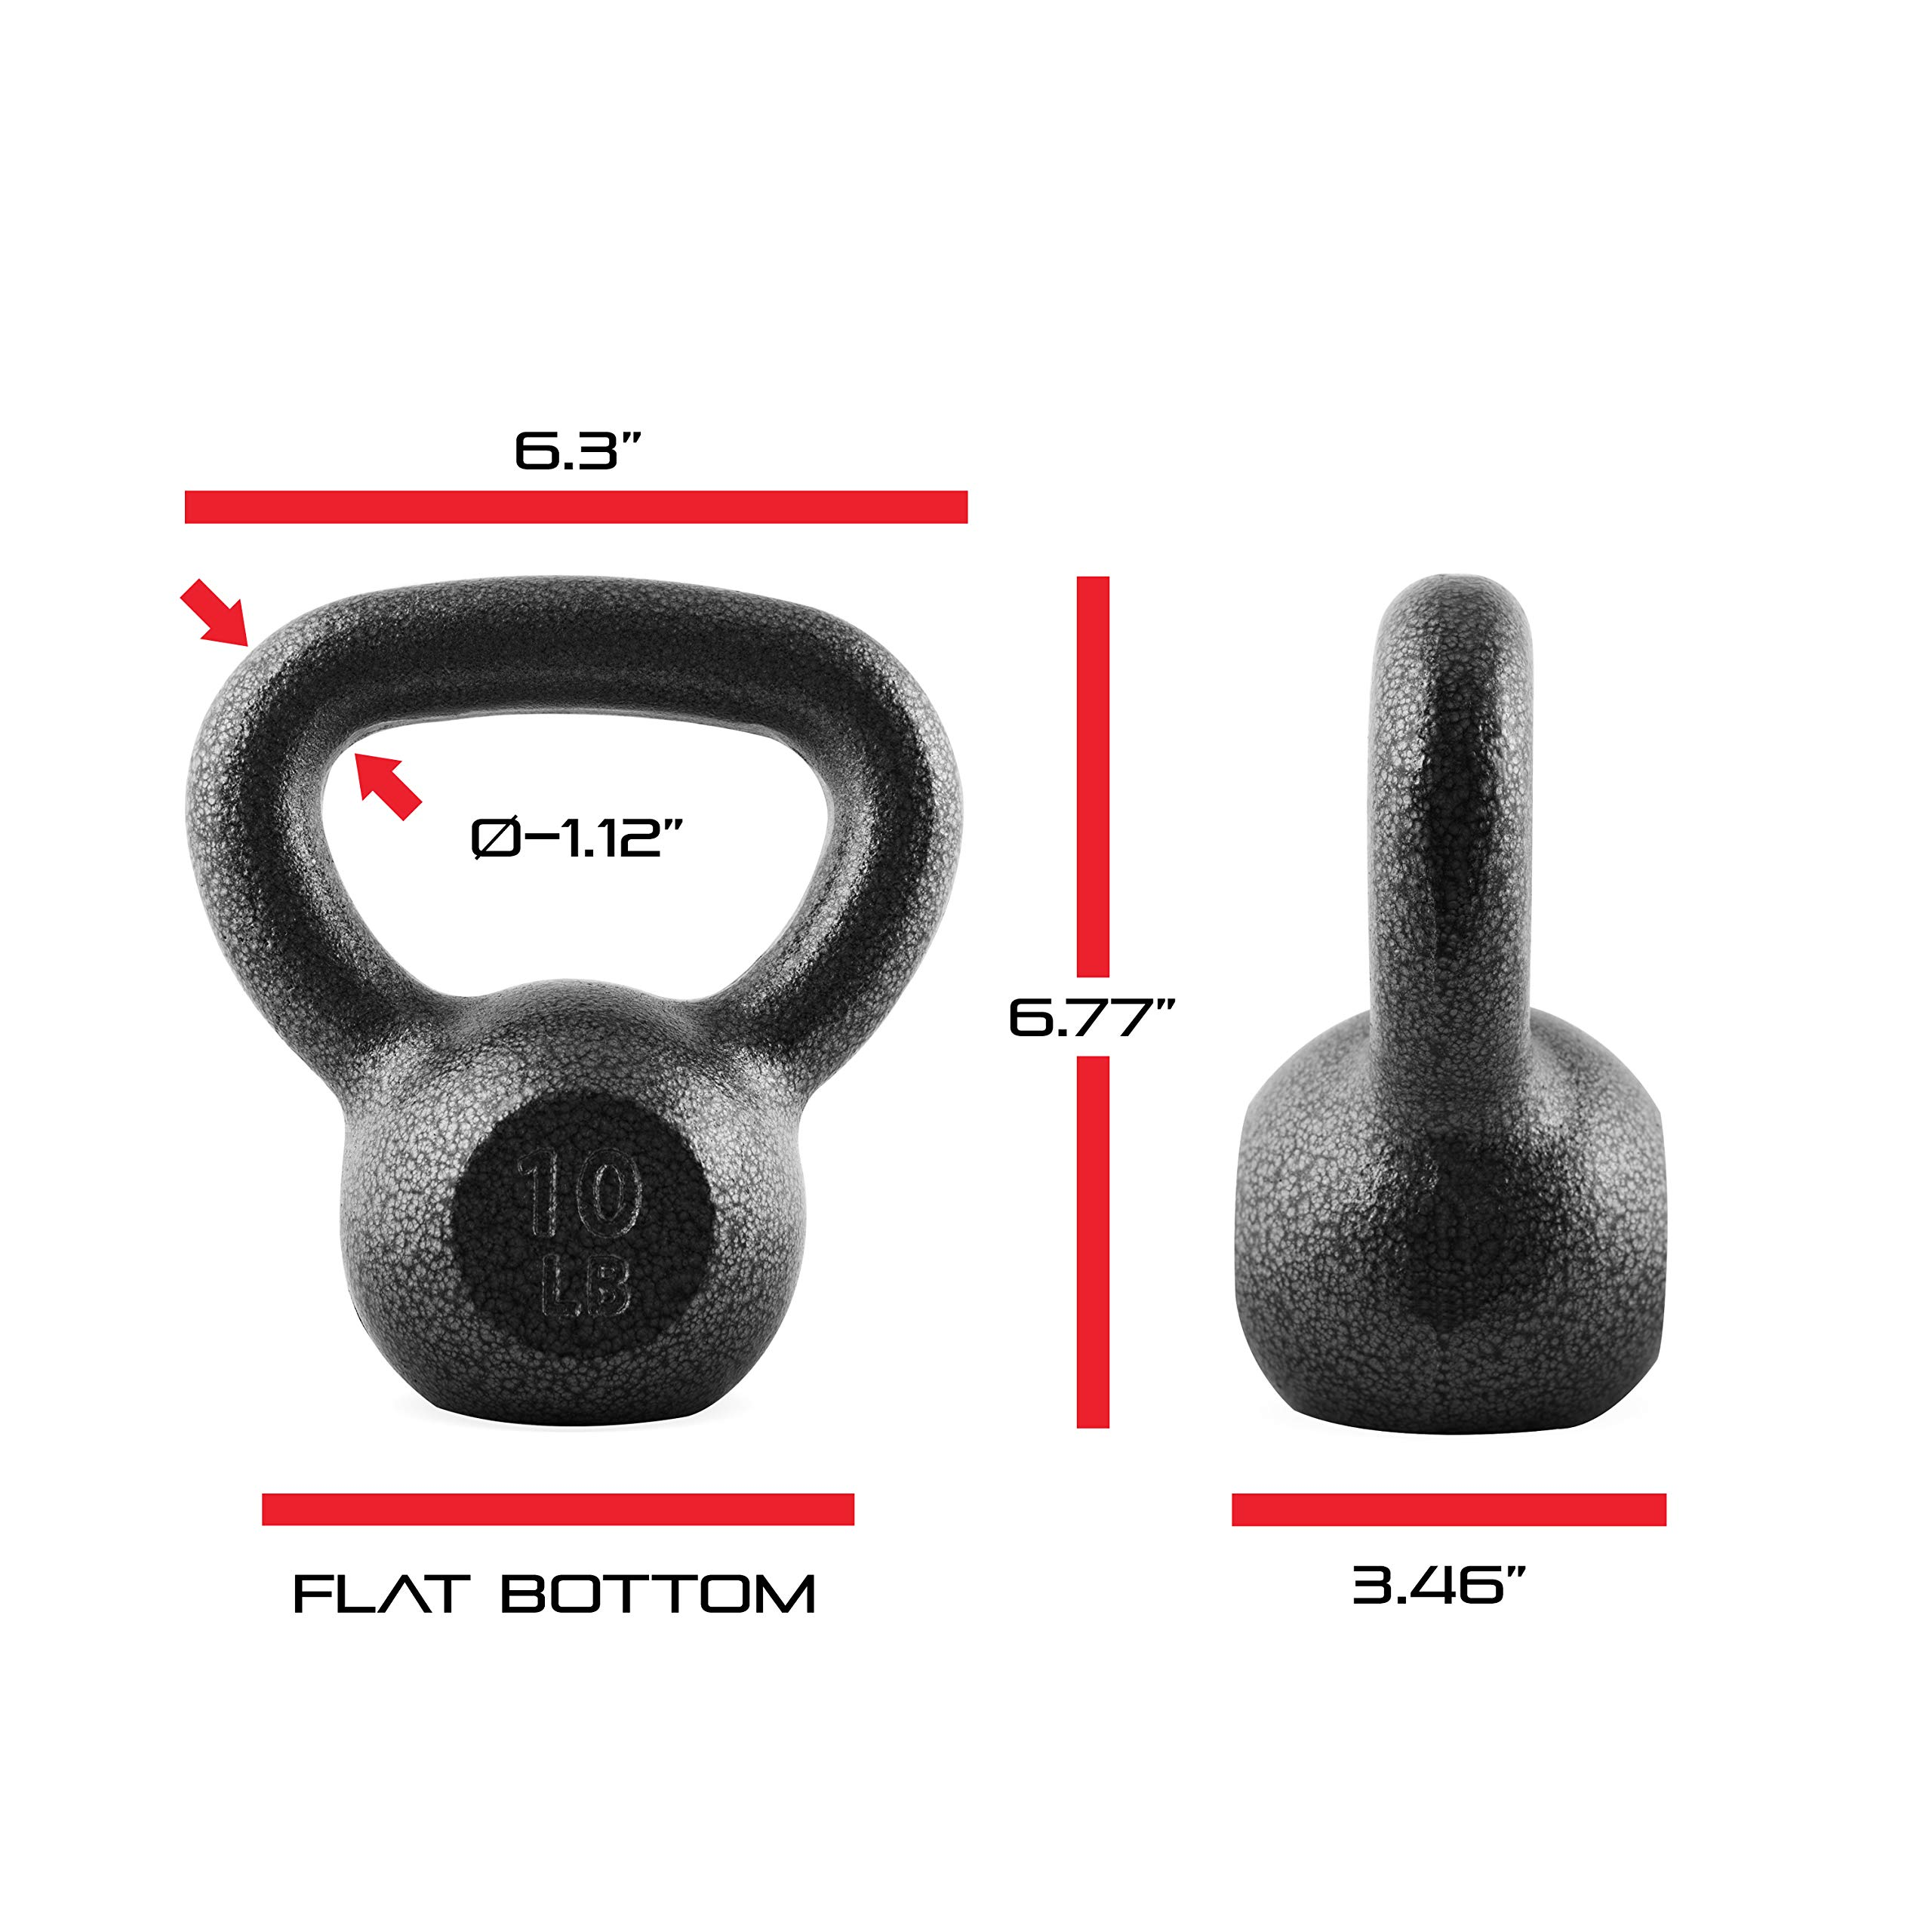 CAP Barbell Cast Iron Kettlebell, Black, 10 lb. by CAP Barbell (Image #4)